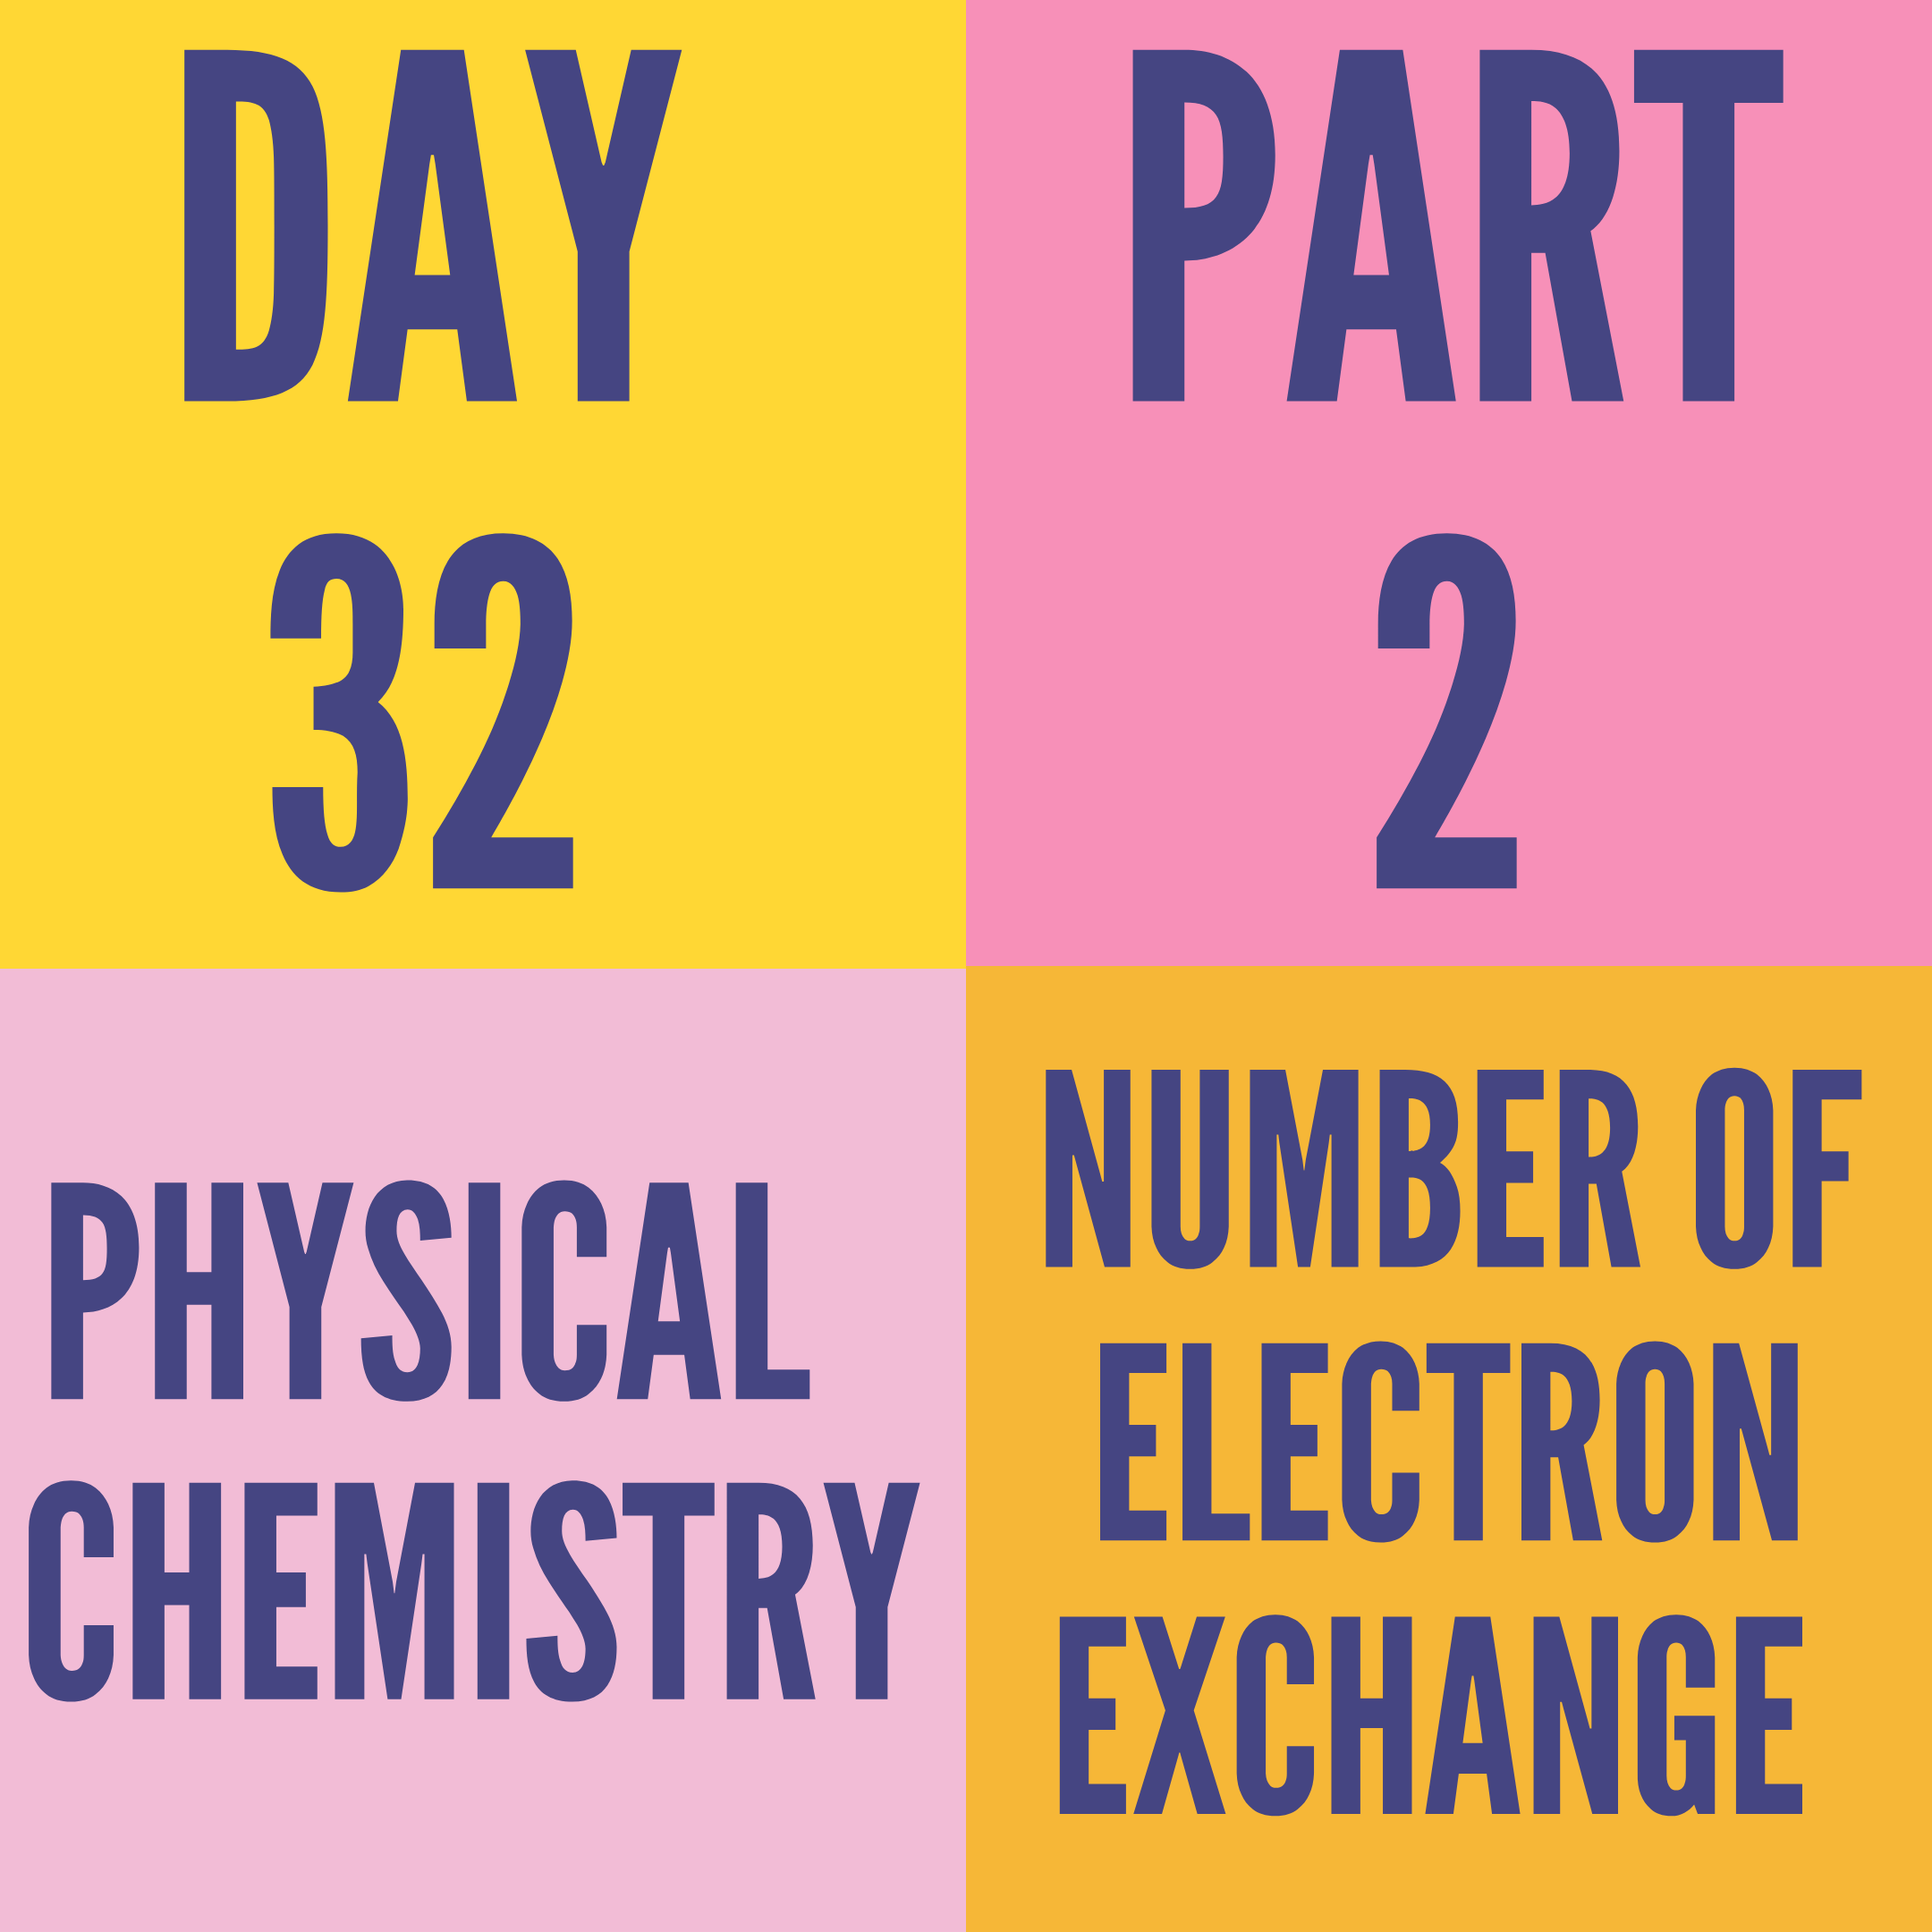 DAY-32 PART-2 NUMBER OF ELECTRON EXCHANGE